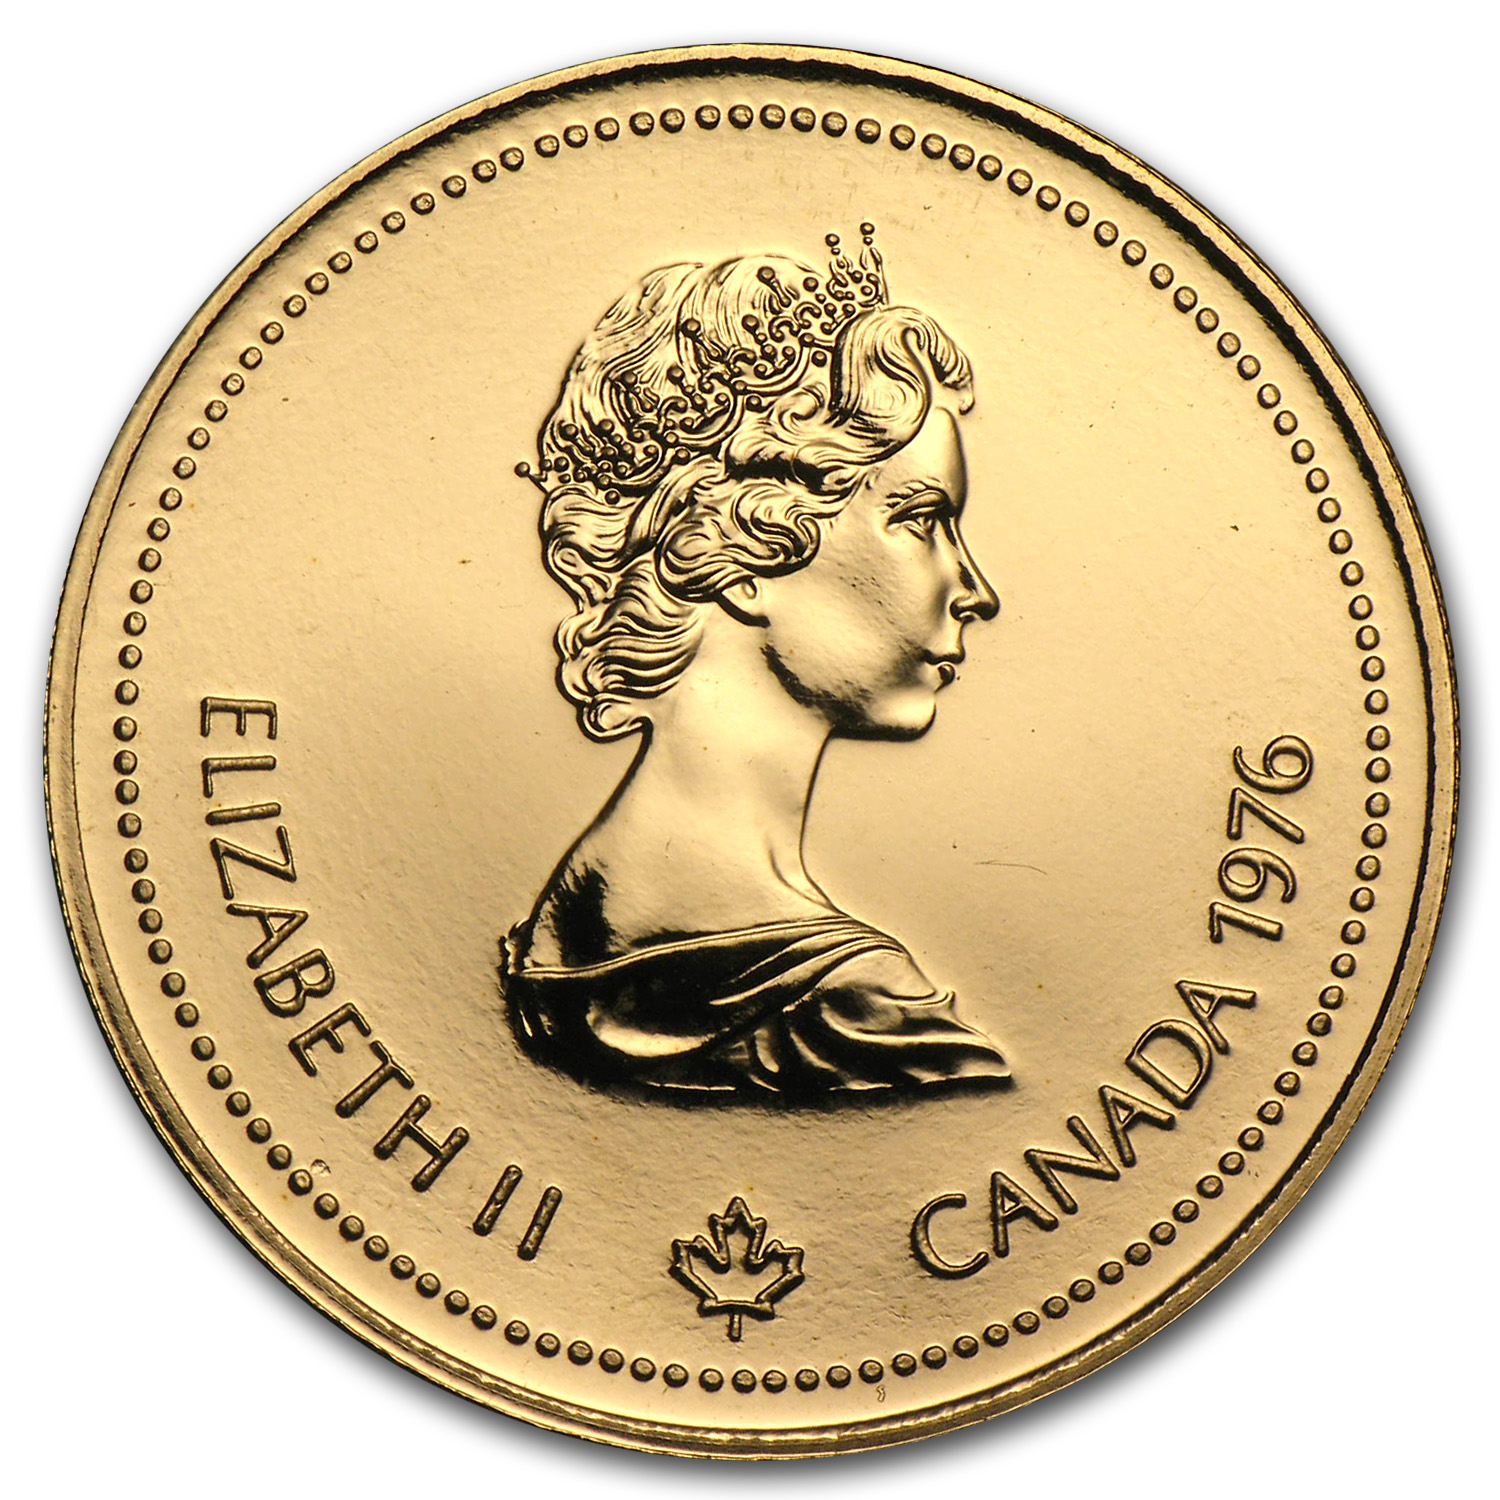 Canada 1976 $100 Gold Proof Olympics (Abrasions)